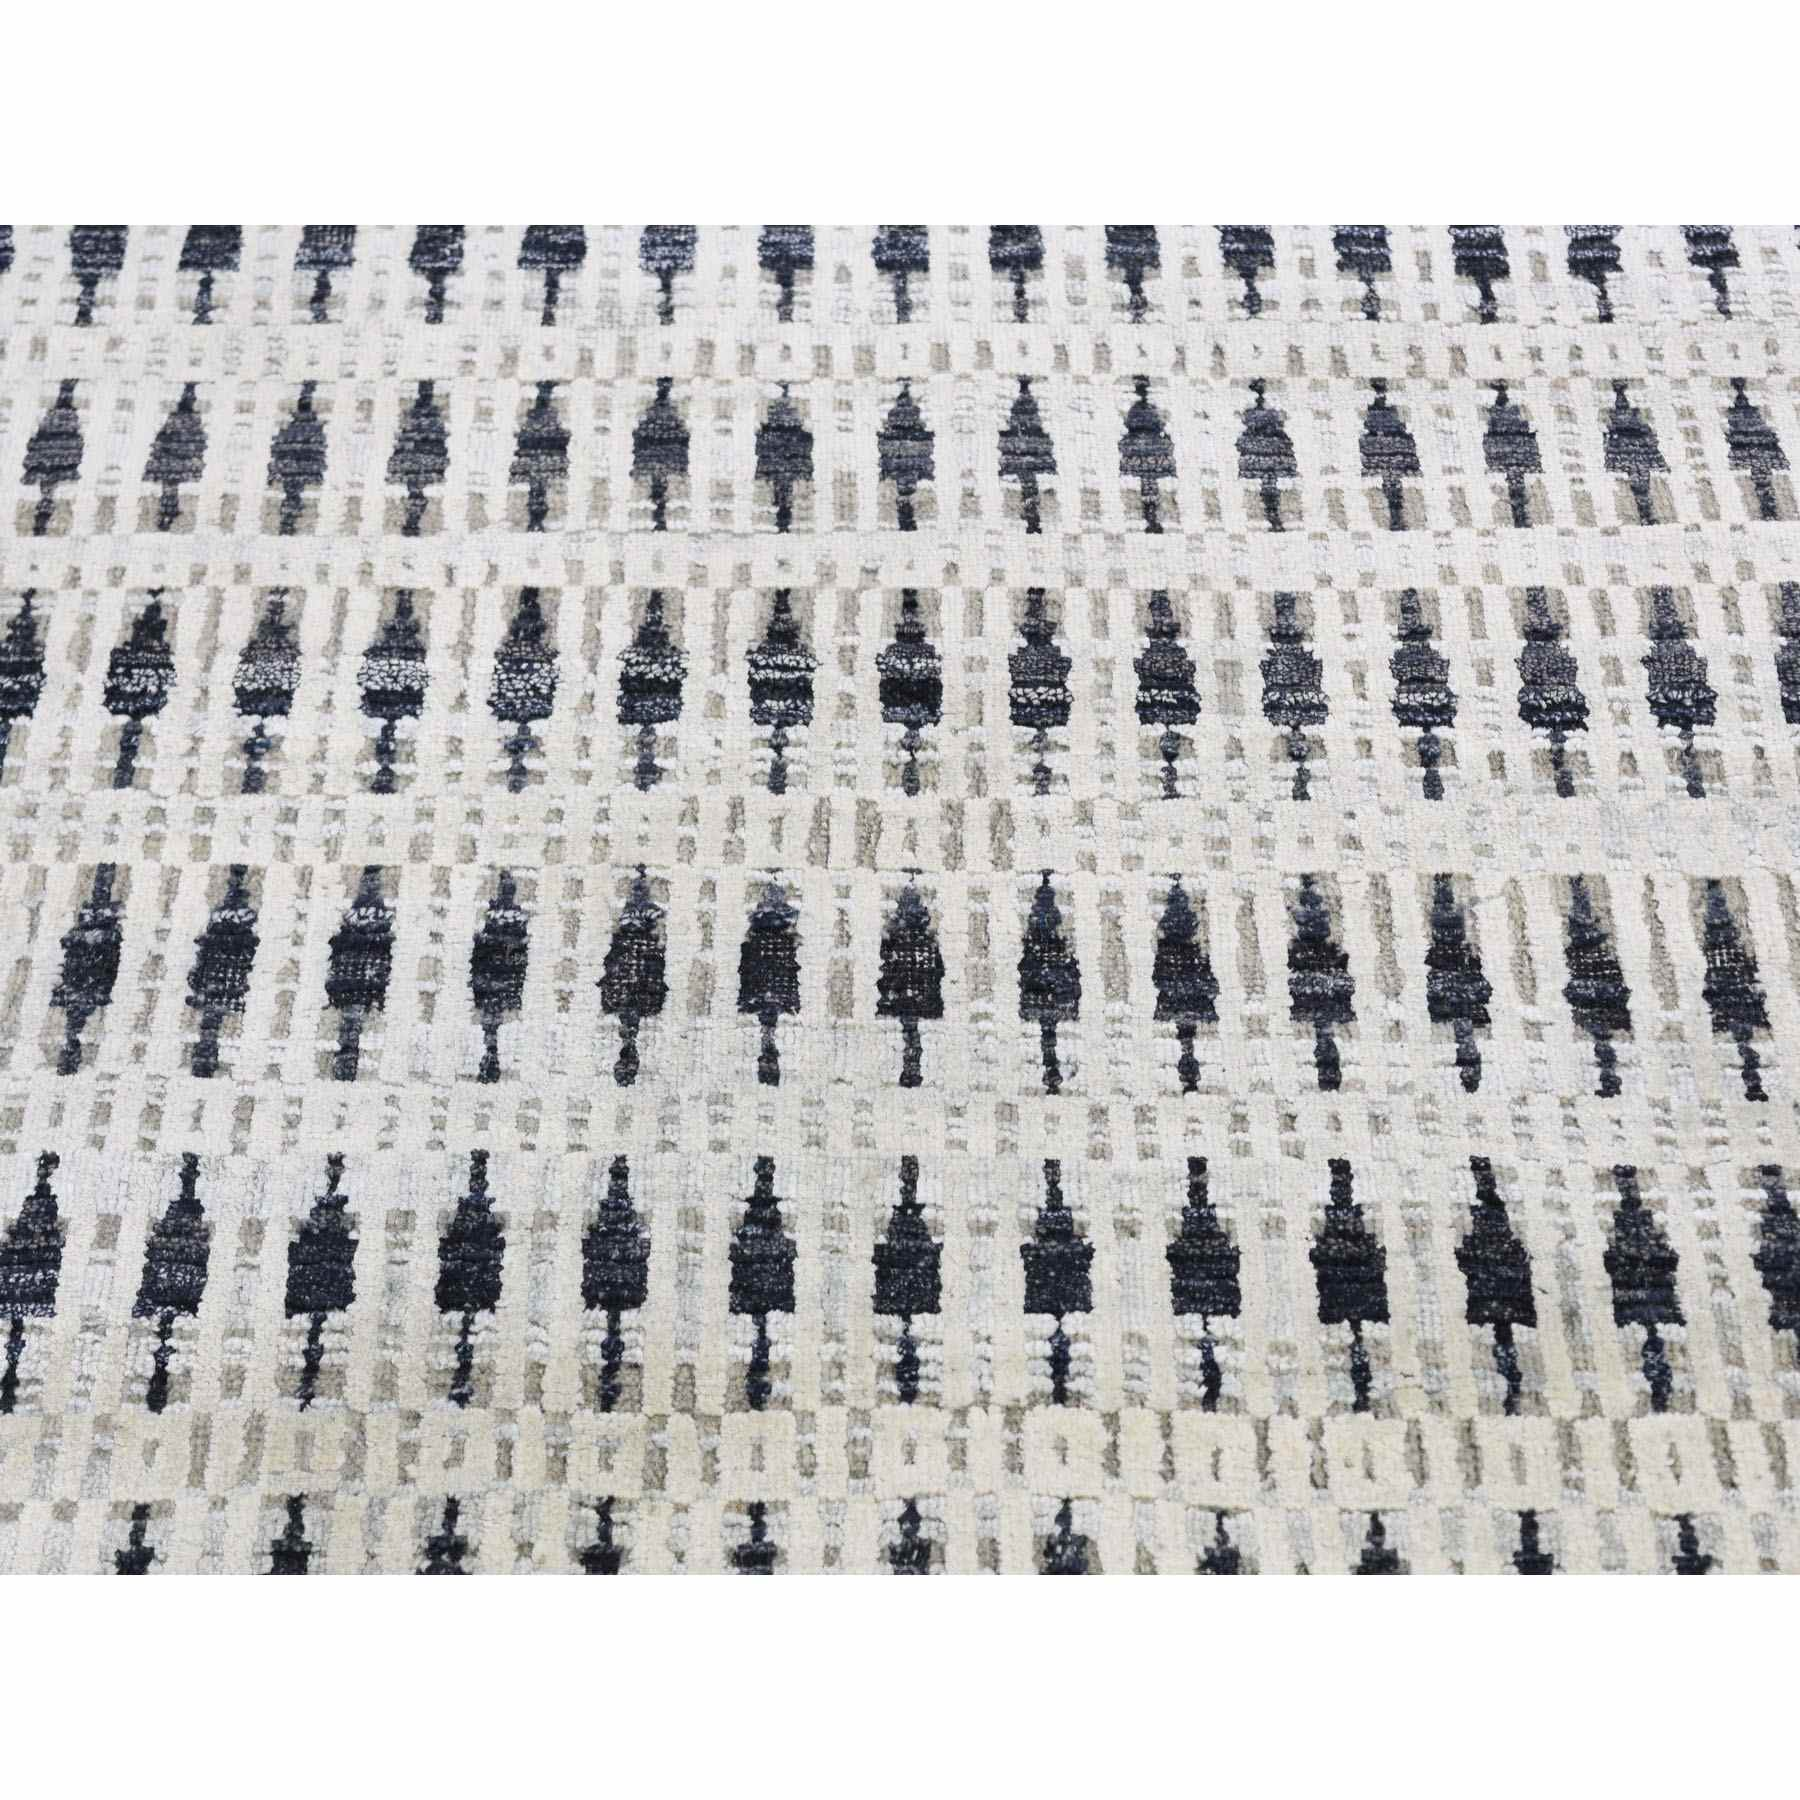 Modern-and-Contemporary-Hand-Knotted-Rug-238440